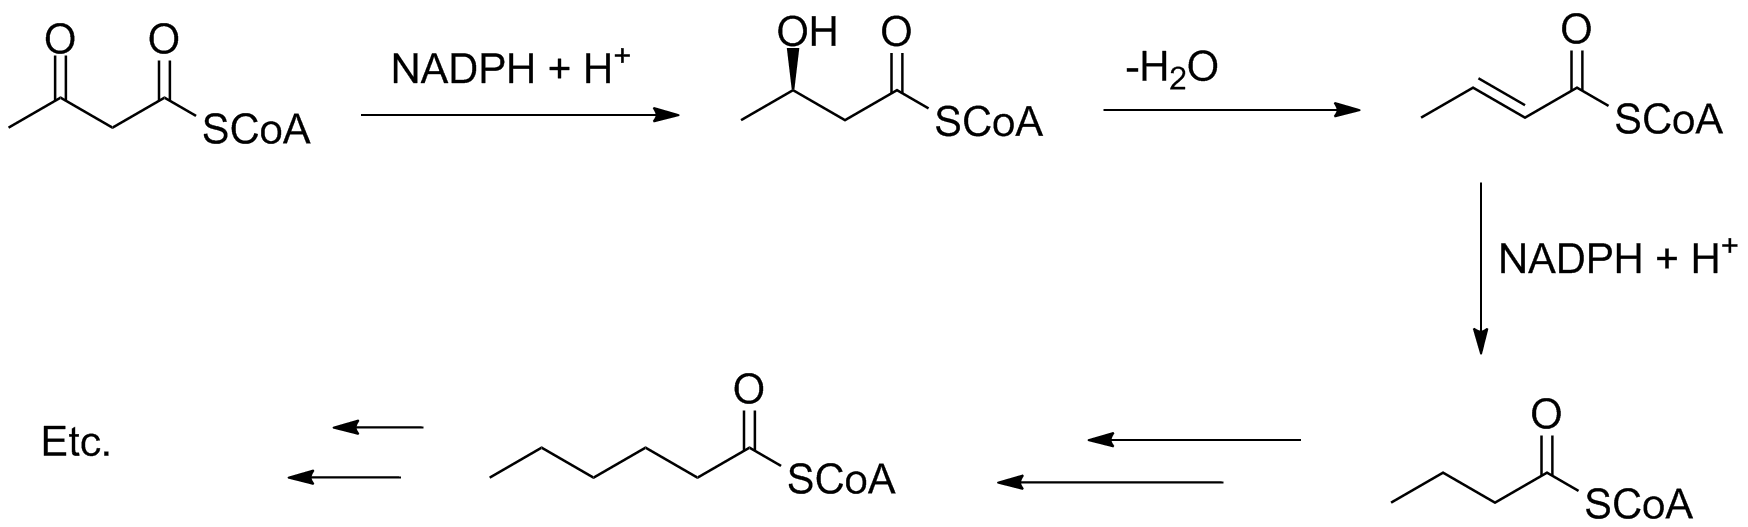 Fatty acid synthesis gableemistryoregonstate to stop at a certain length and the reduction steps can be skipped this often happens in the biosynthesis of mono and polyunsaturated fatty acids pooptronica